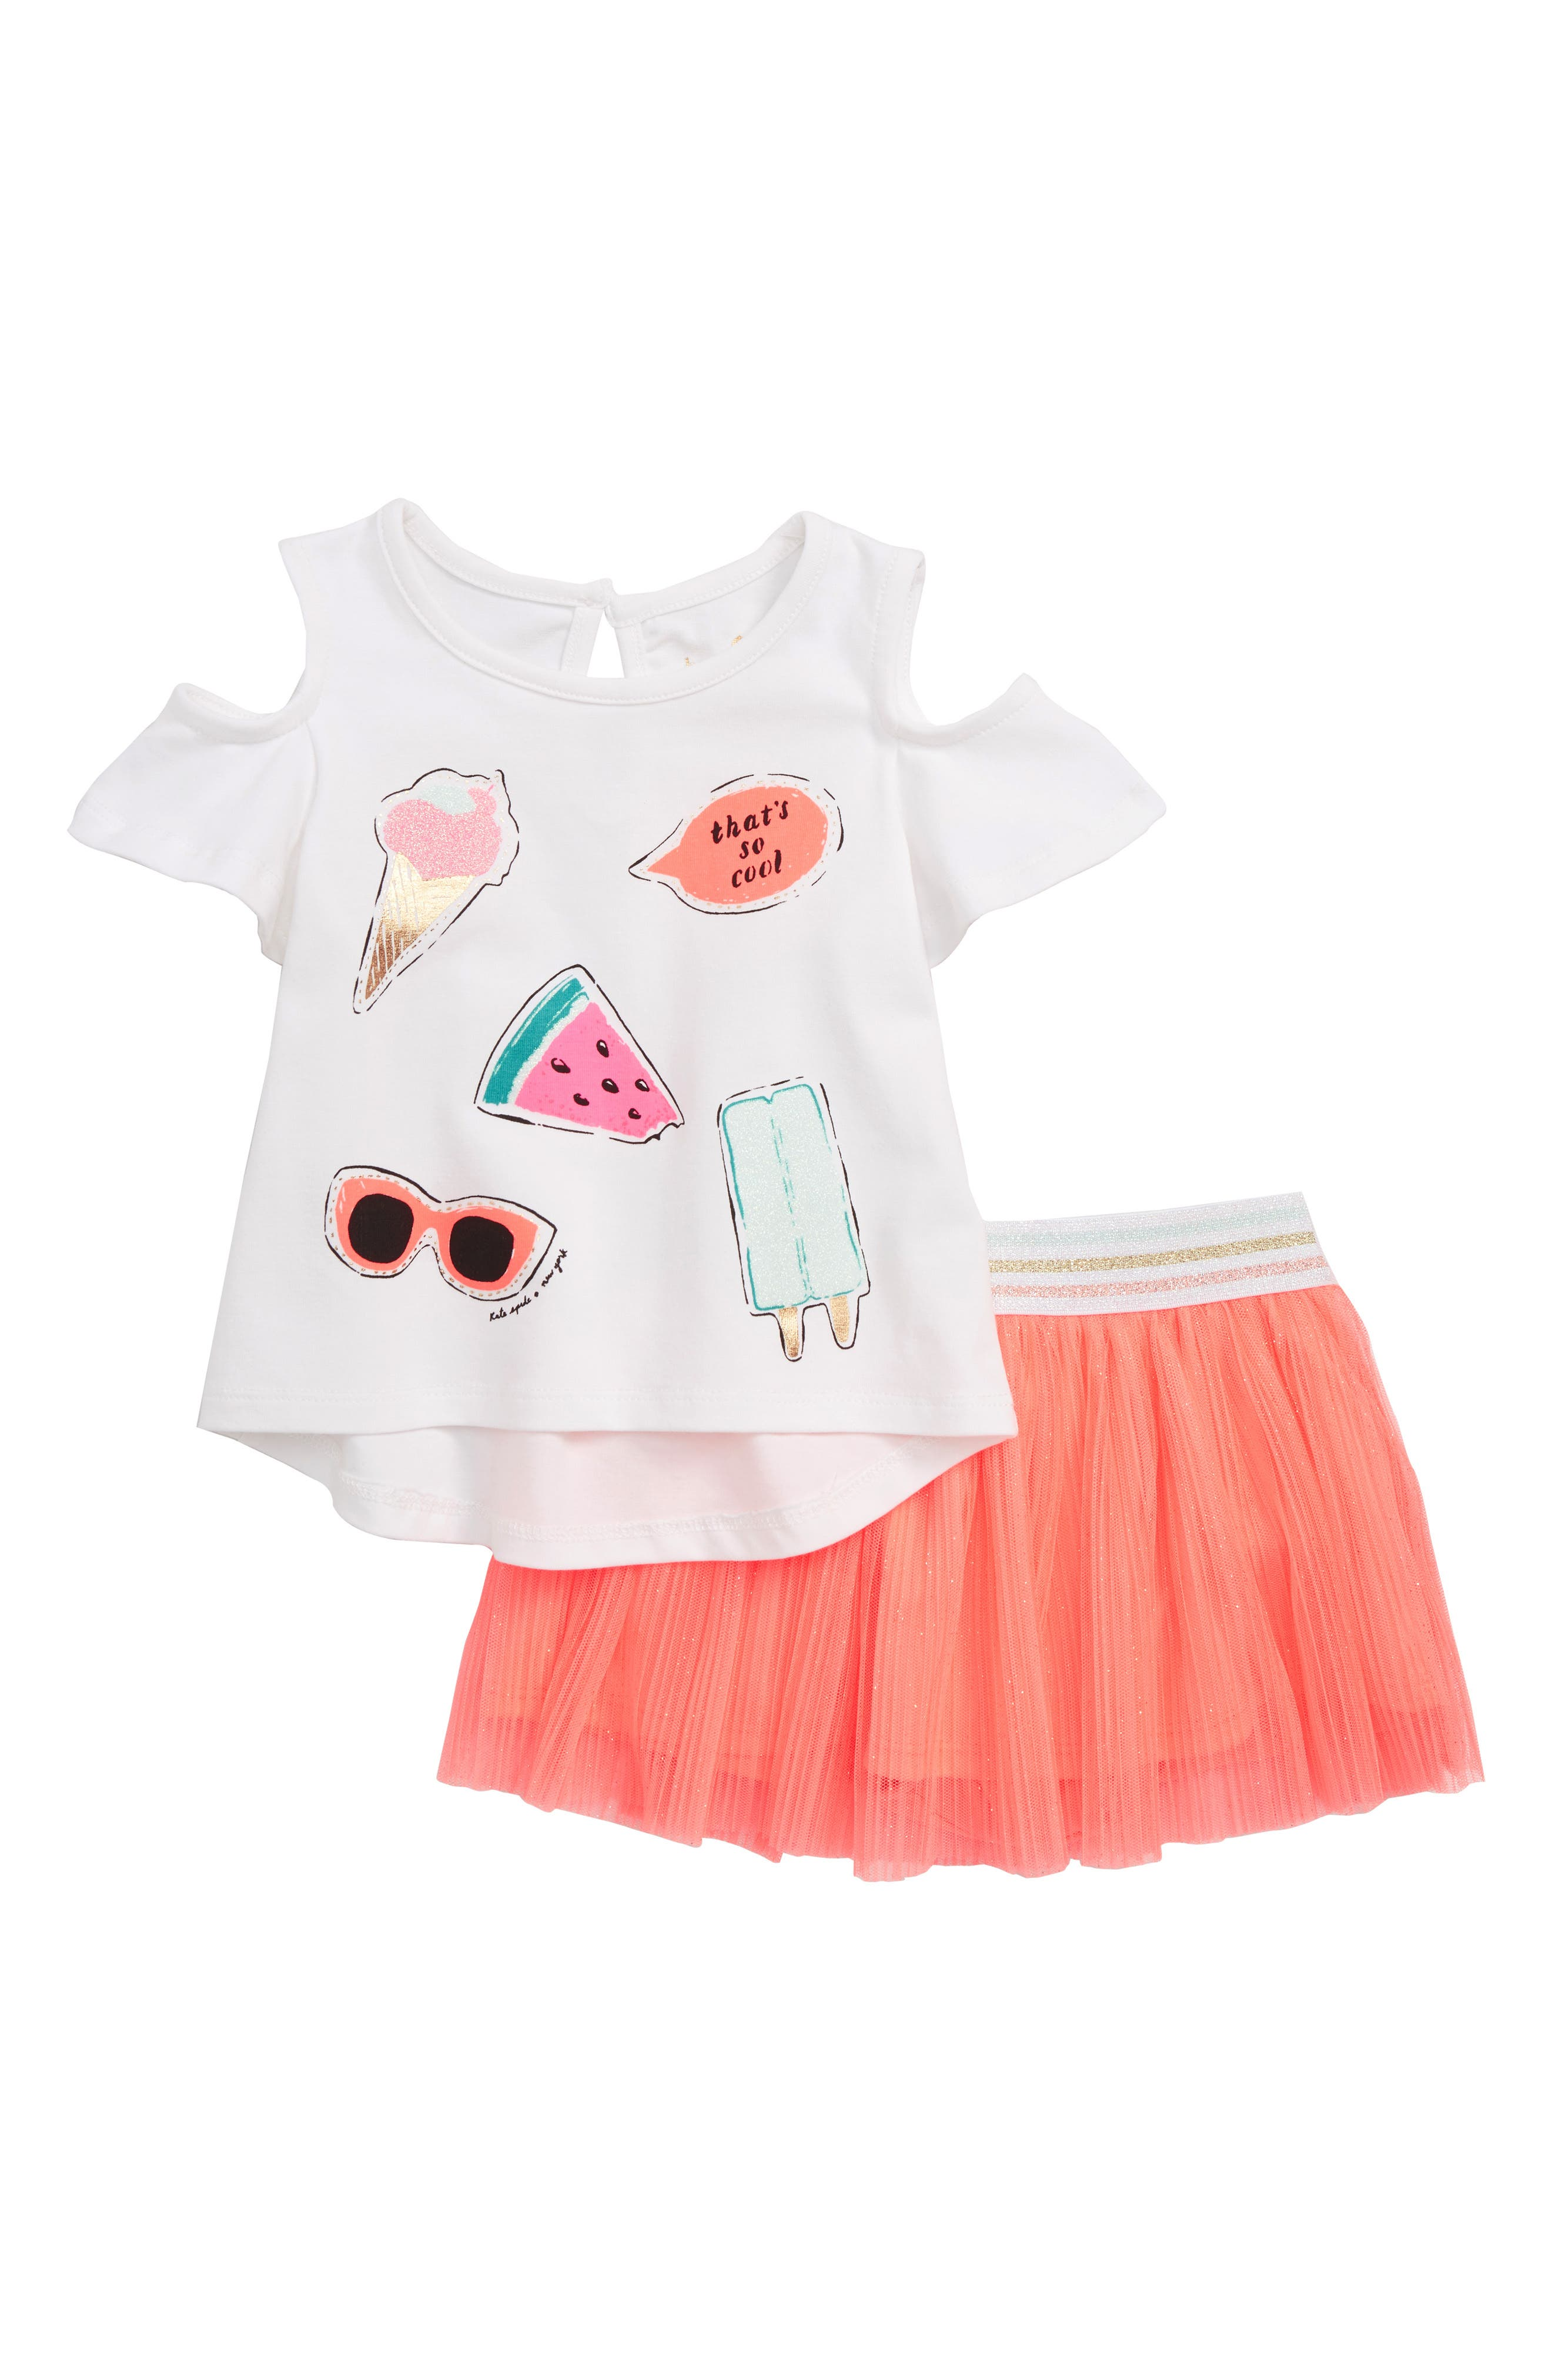 kate spade new york so cool cold shoulder tee & skirt set (Baby Girls)